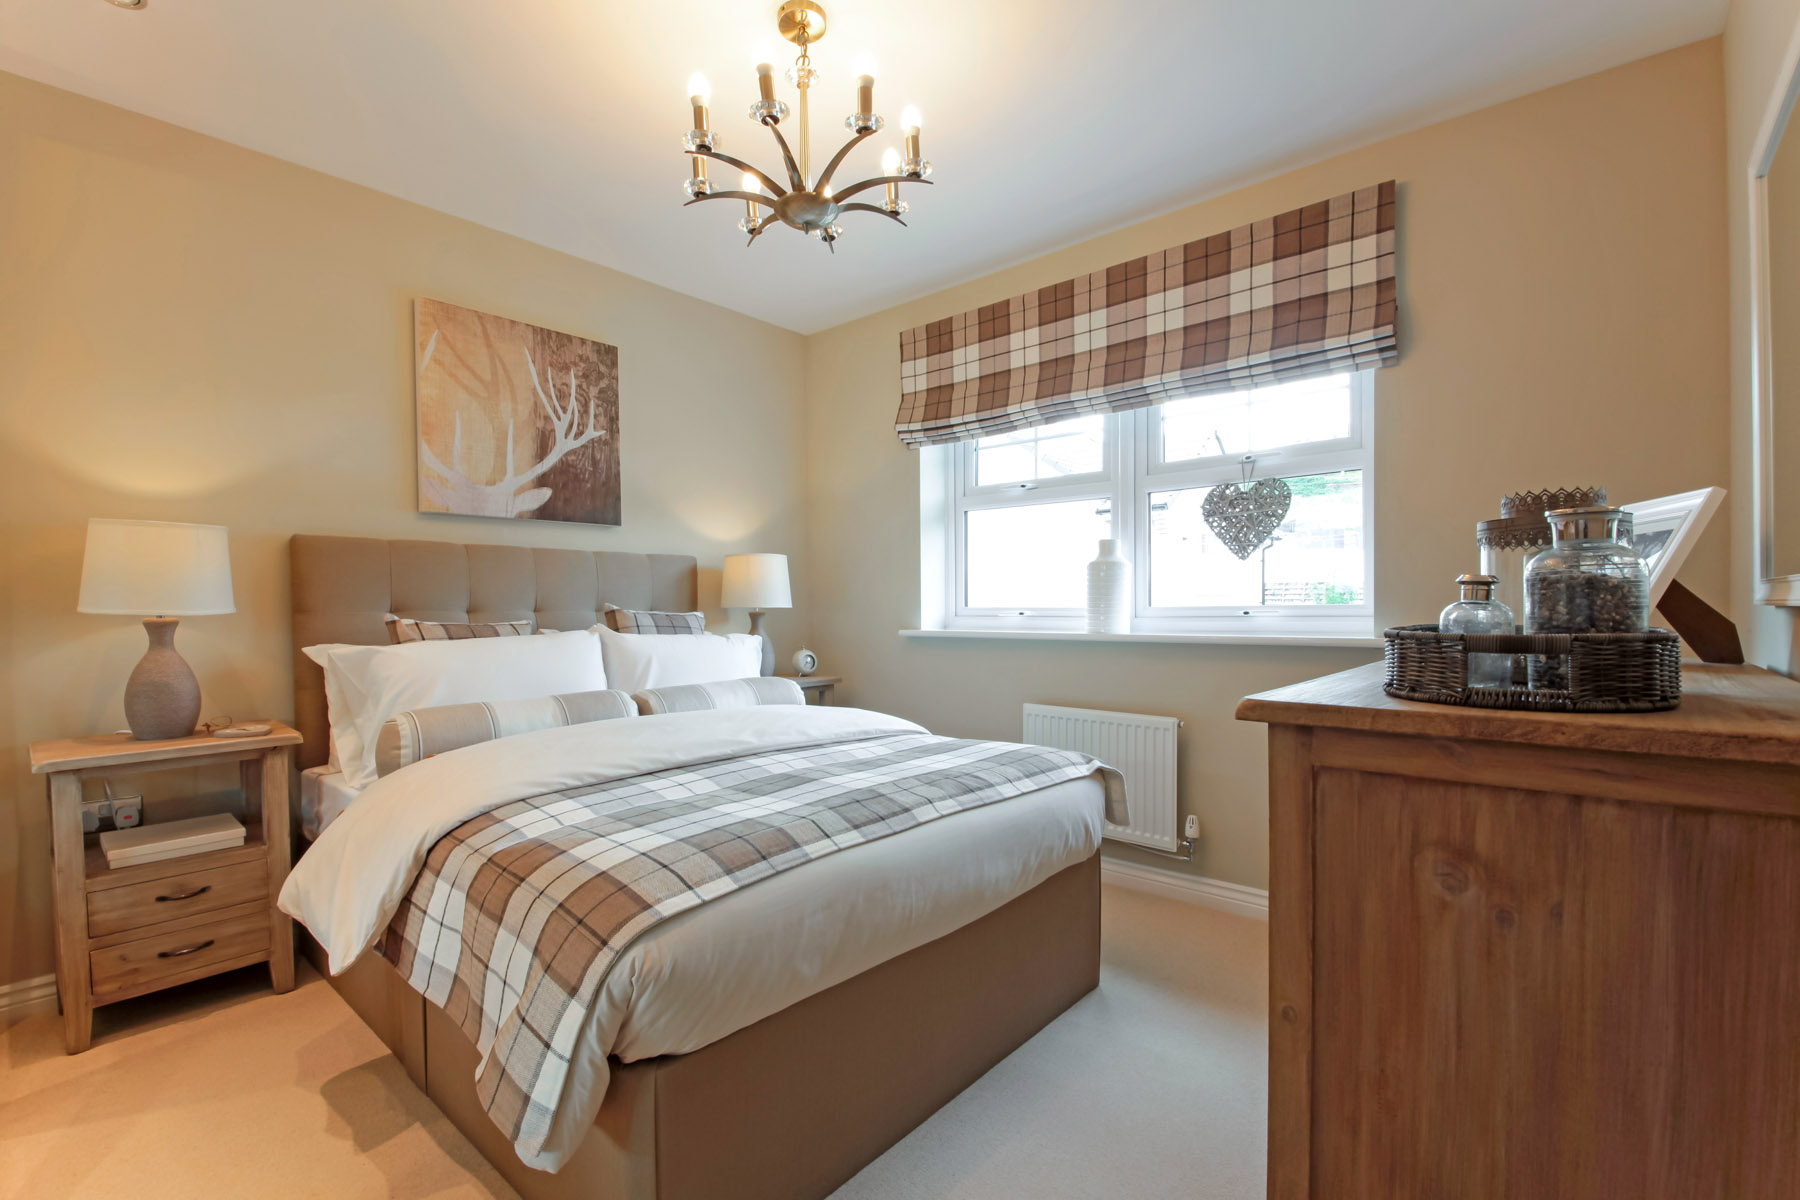 018_DMV_Lydford_Bedroom_2